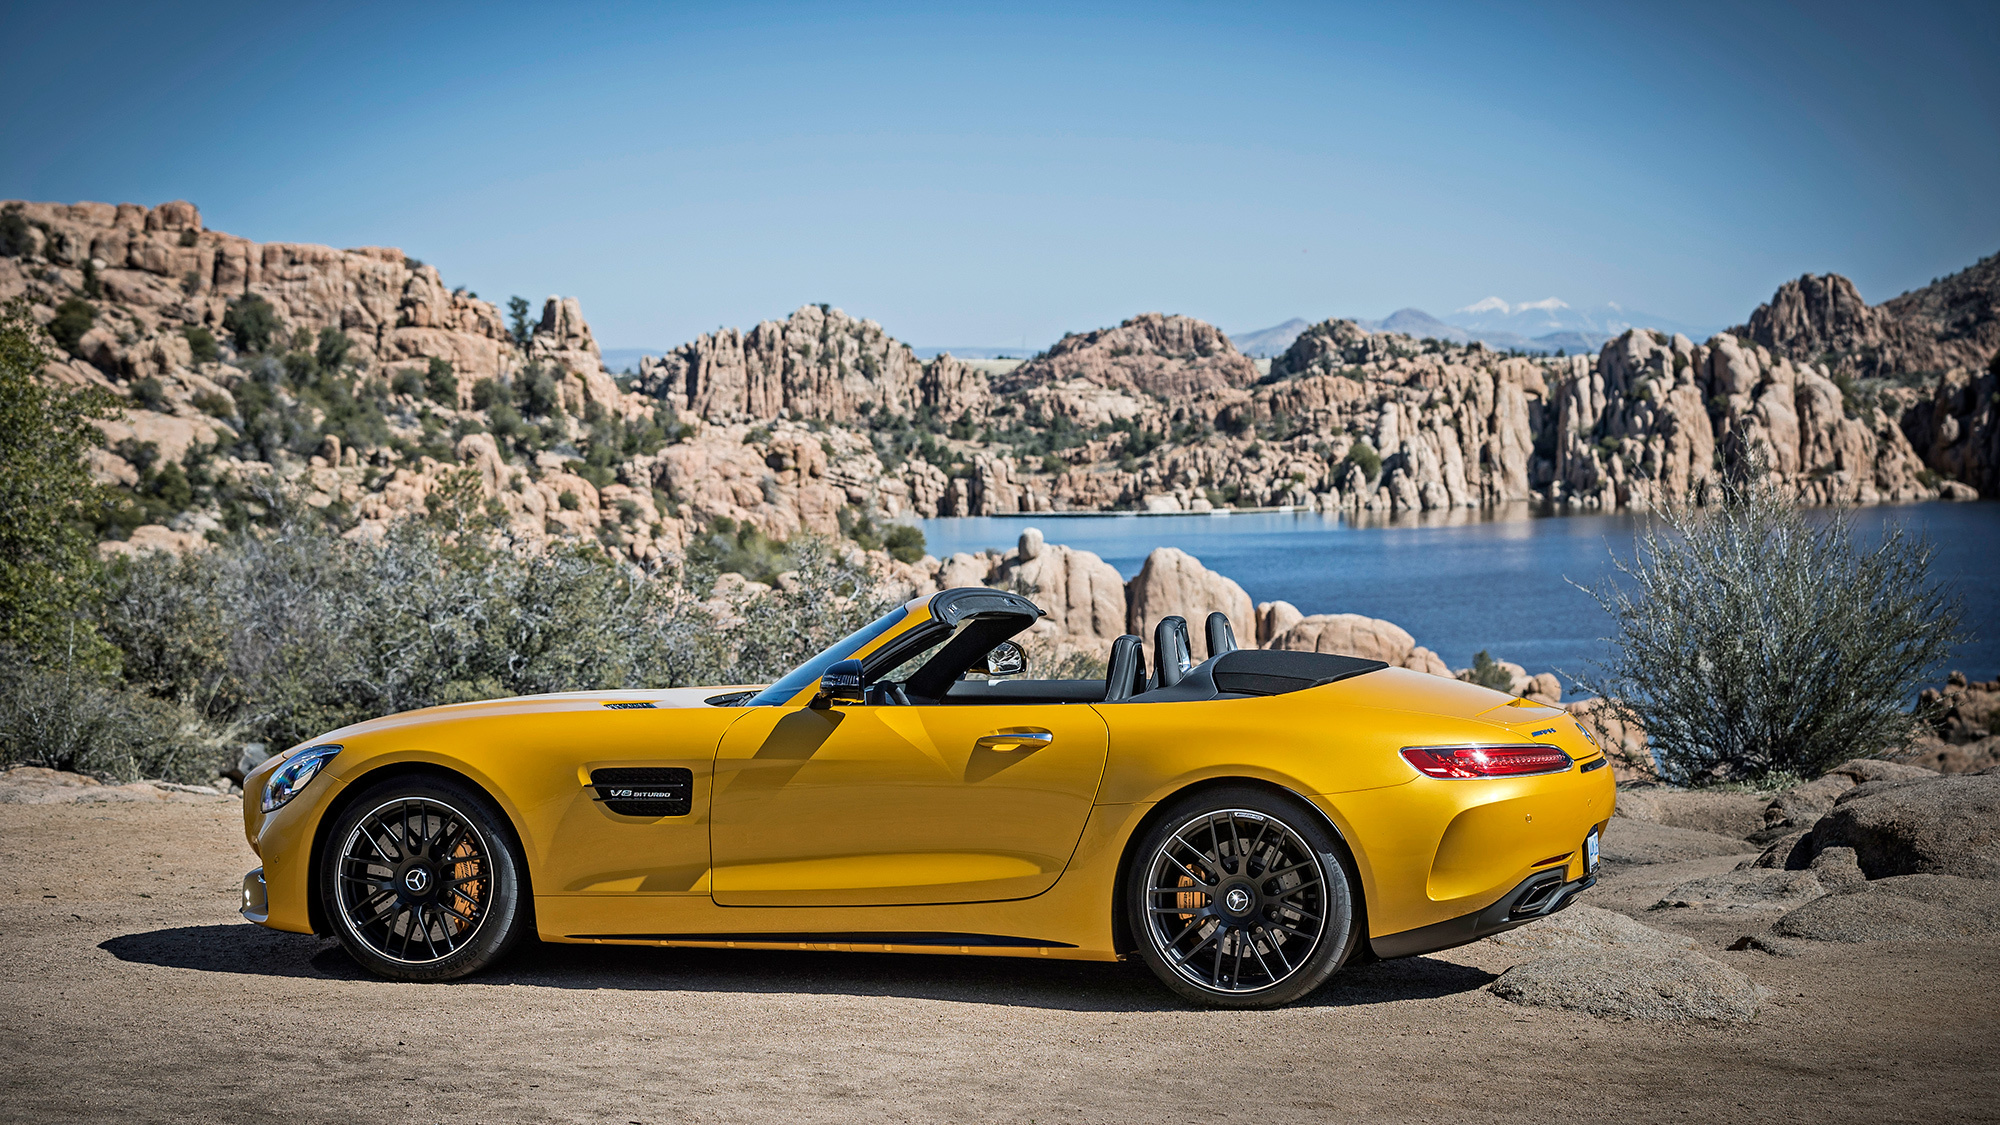 mercedes amg gt c roadster wallpapers images photos pictures backgrounds. Black Bedroom Furniture Sets. Home Design Ideas